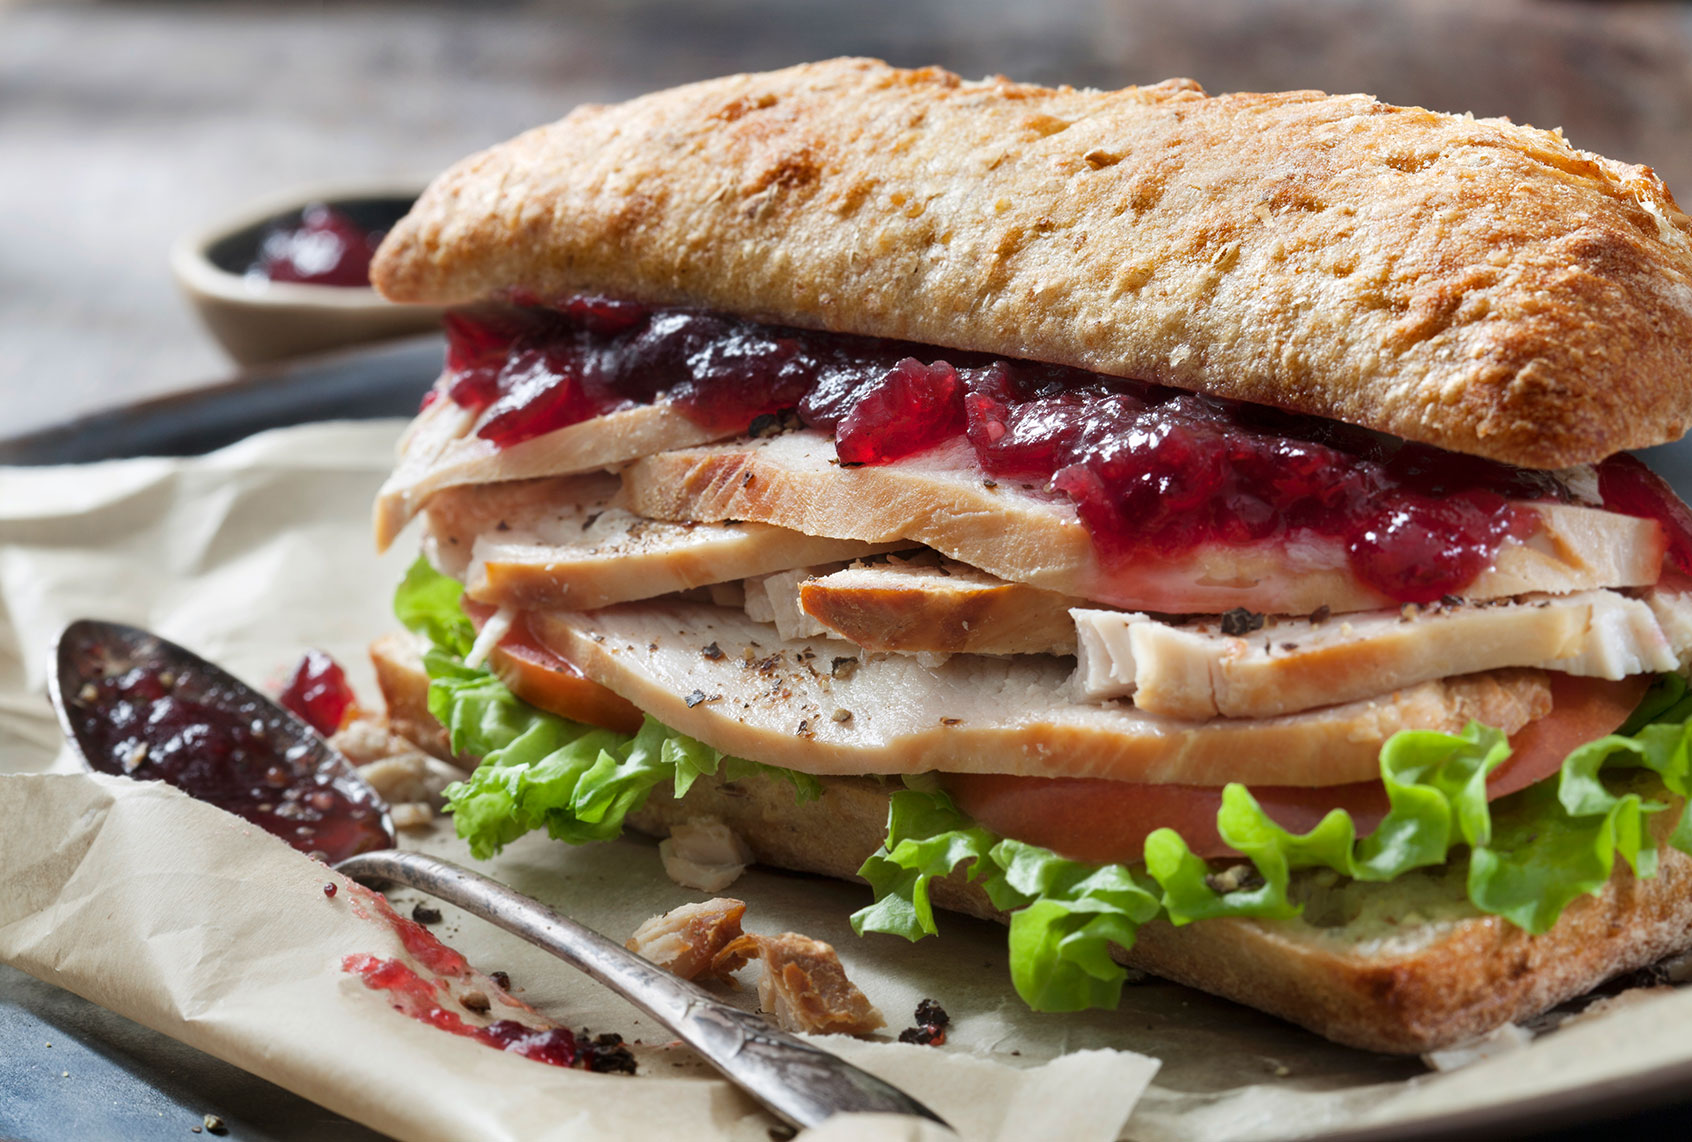 How to build the ideal holiday leftovers sandwich, according to food professionals